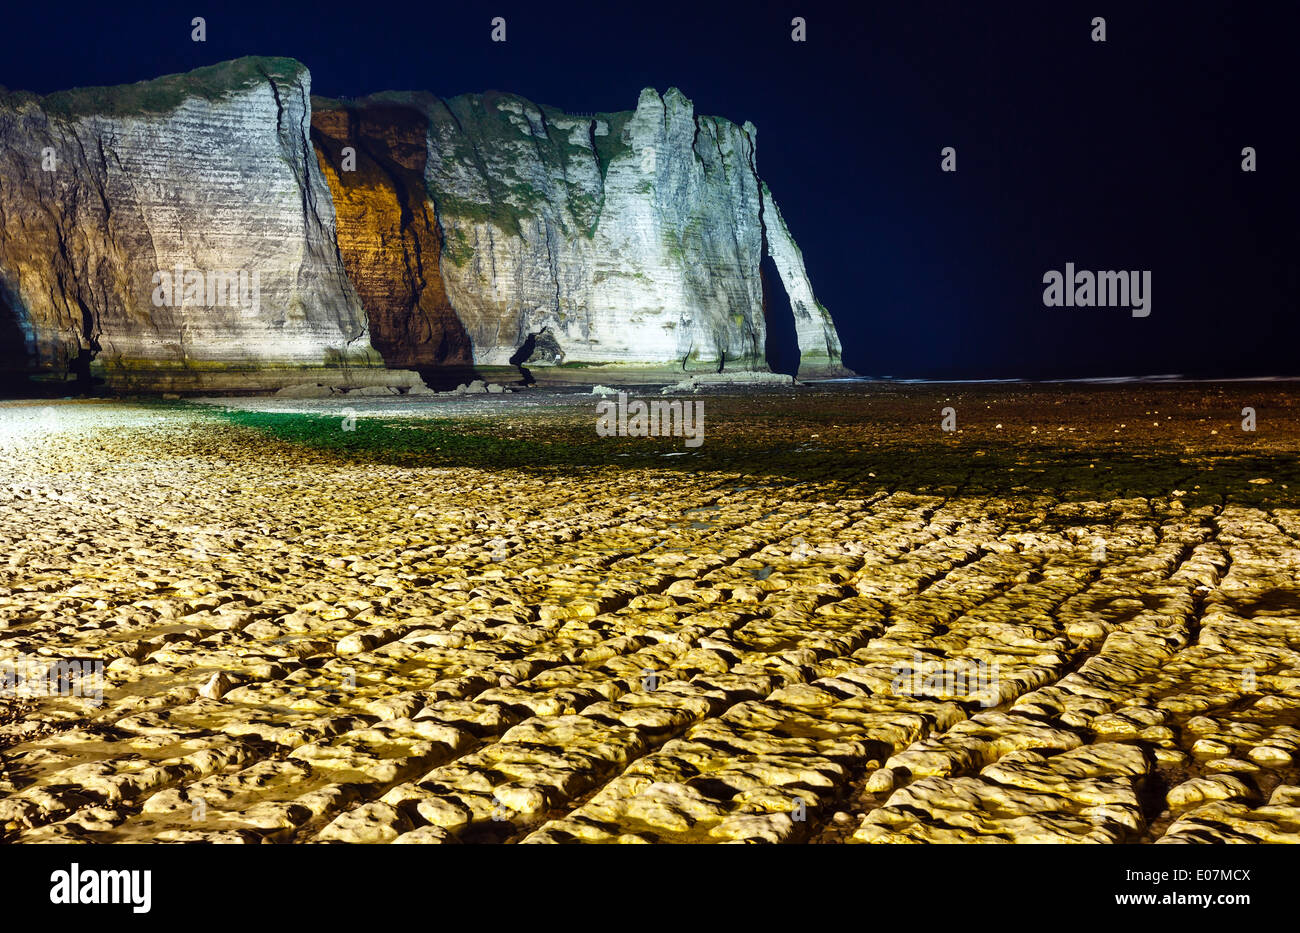 One of the three famous white cliffs known as the Falaise de Aval. Etretat, France. Night scene. March 2014. - Stock Image